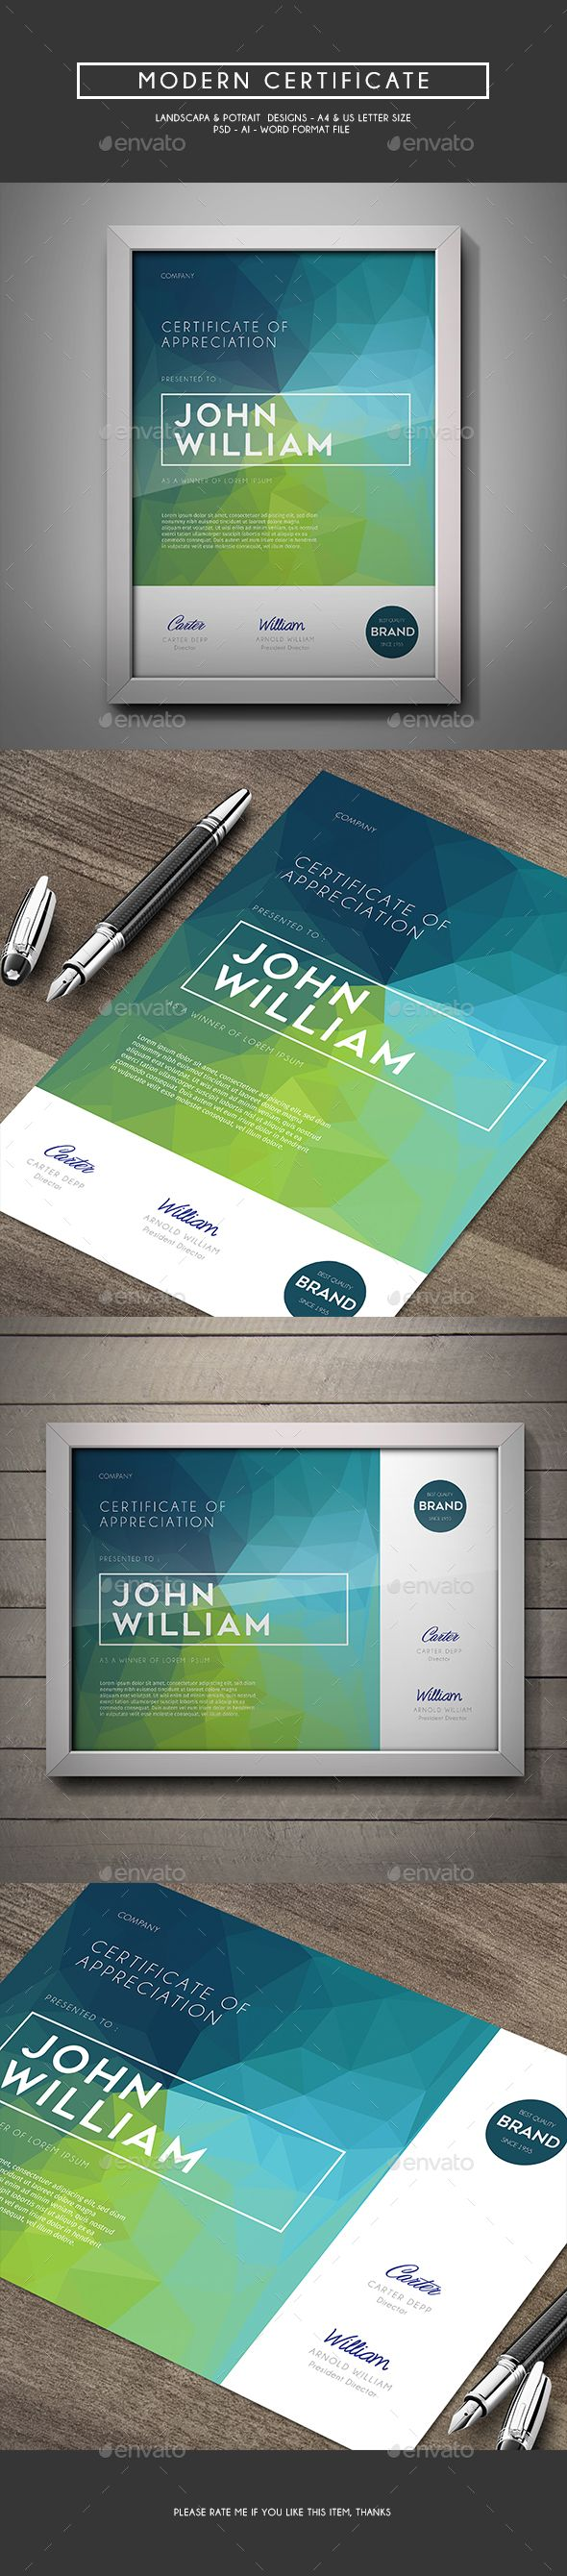 Modern Certificate Template PSD, Vector AI #design Download…